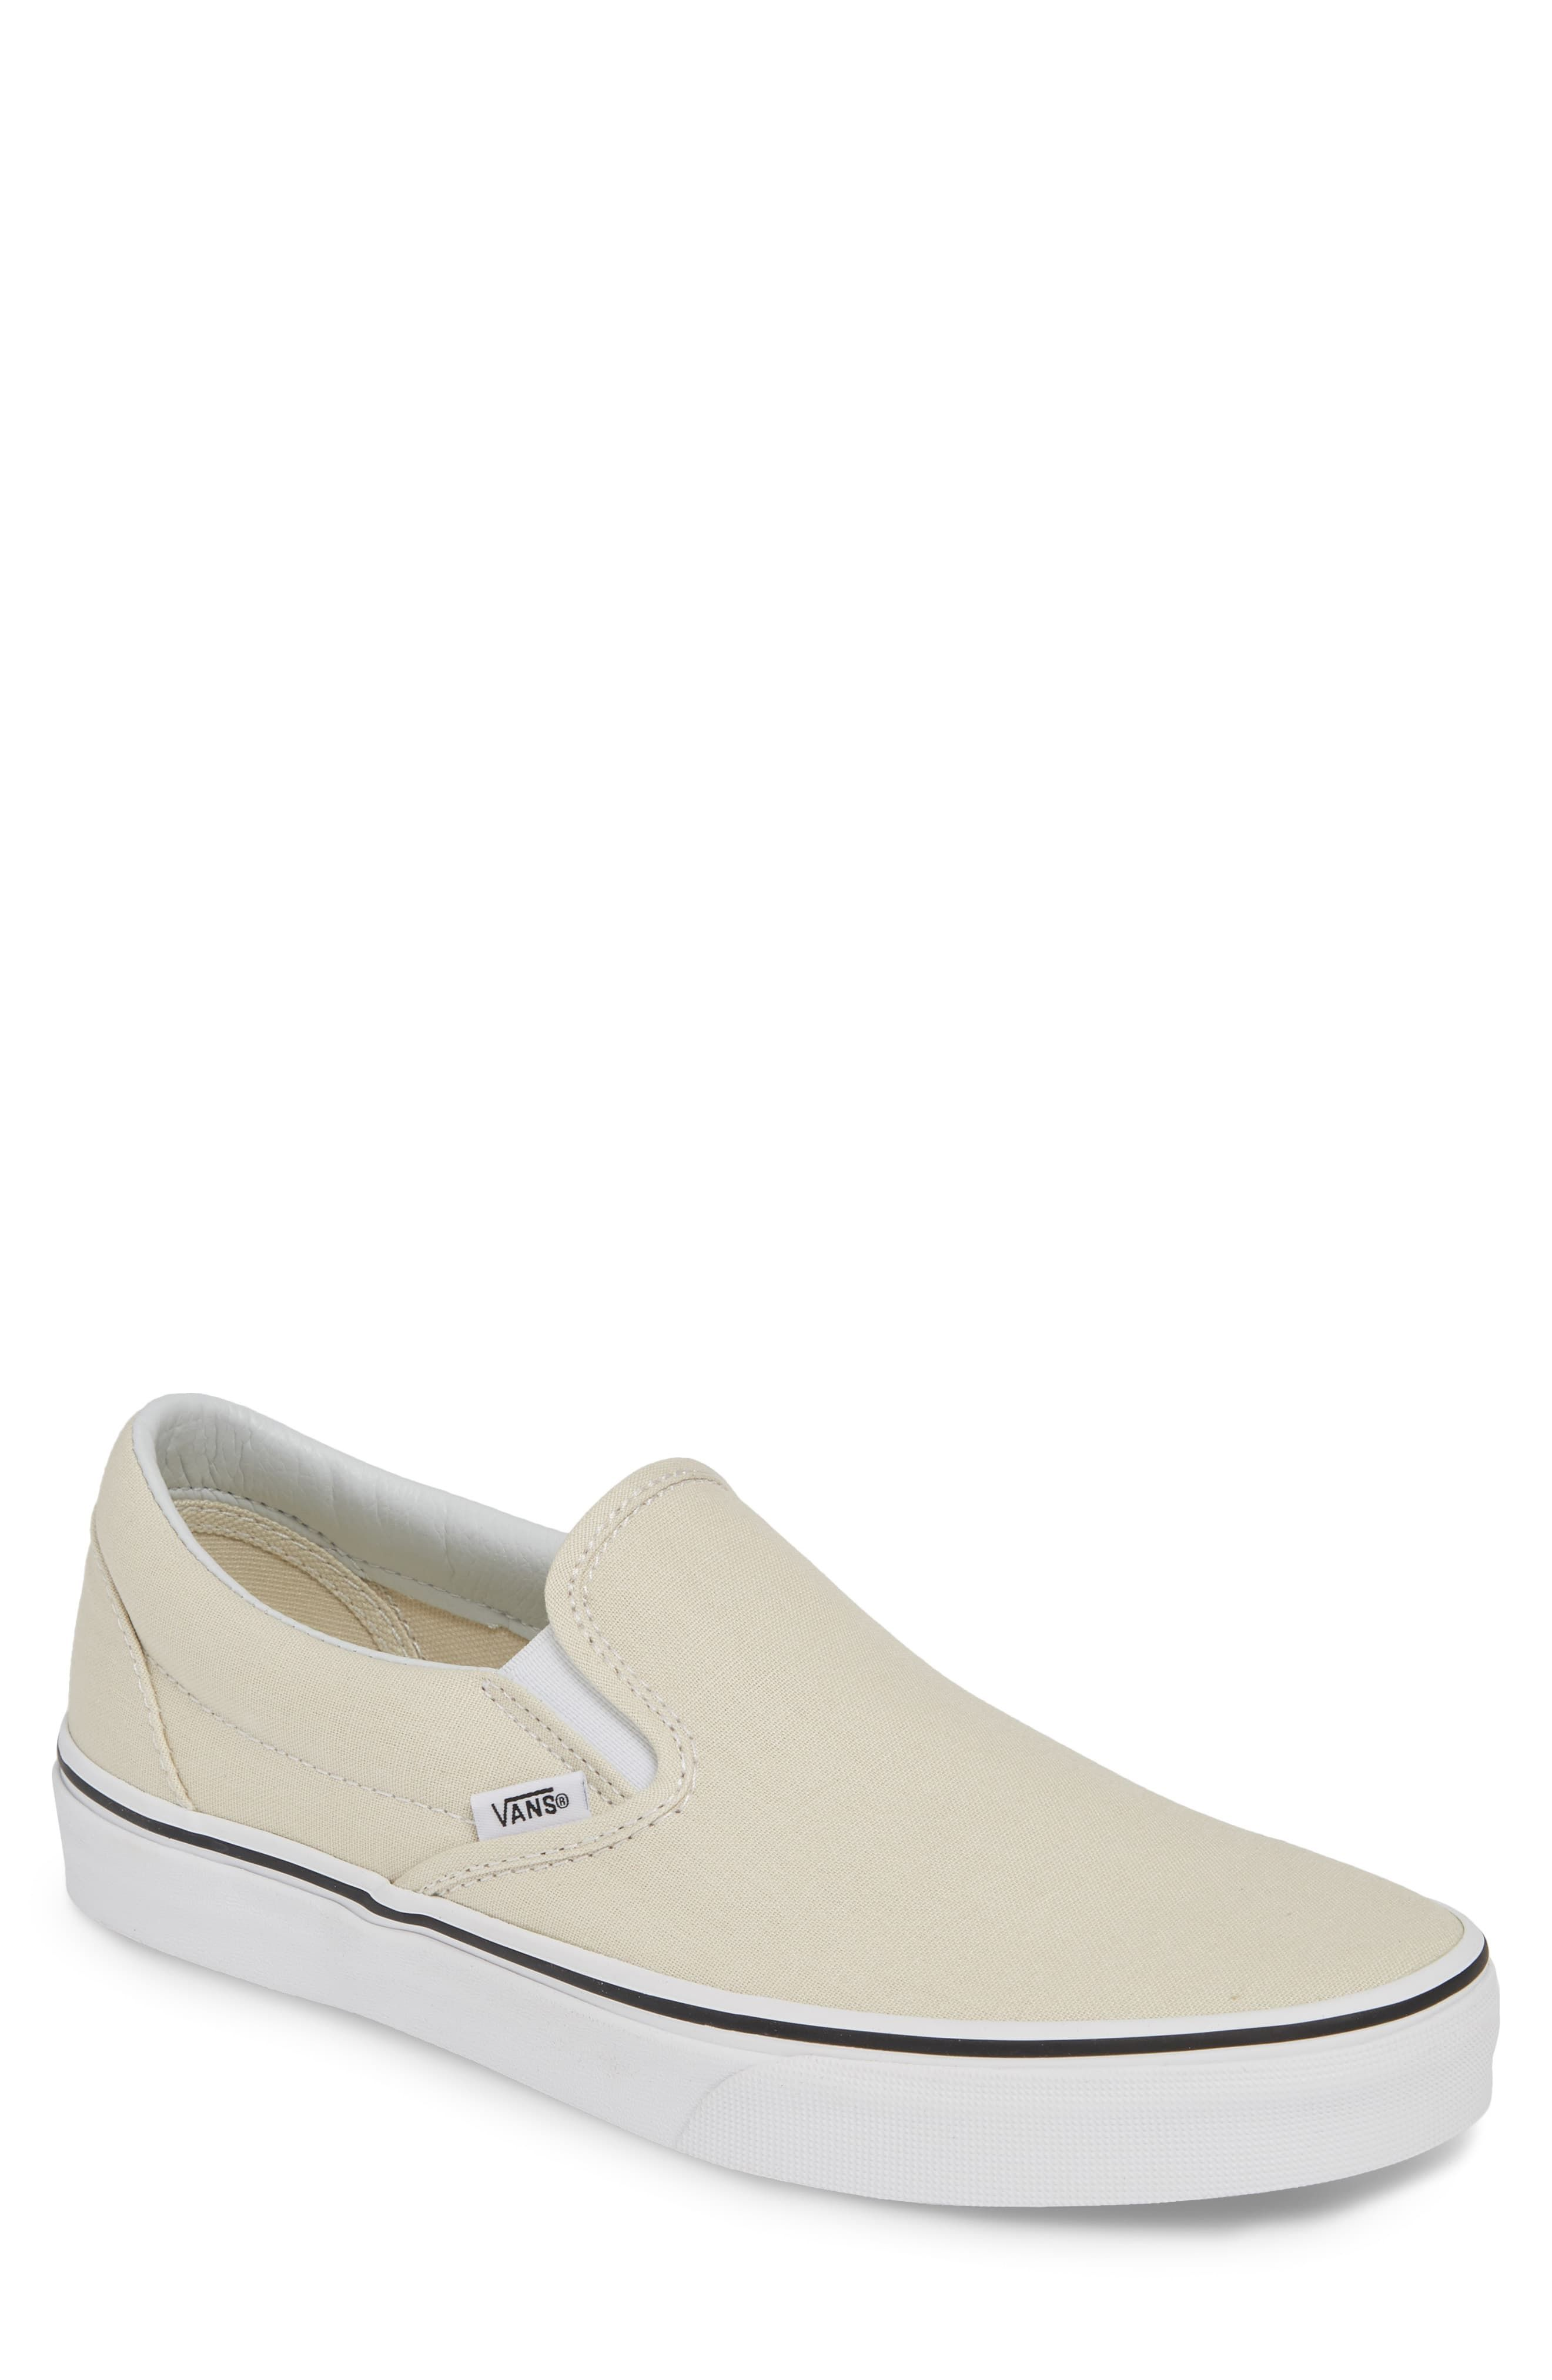 fa976ebb Vans 'Classic' Slip-On Sneaker in 2019 | Products | Sneakers ...